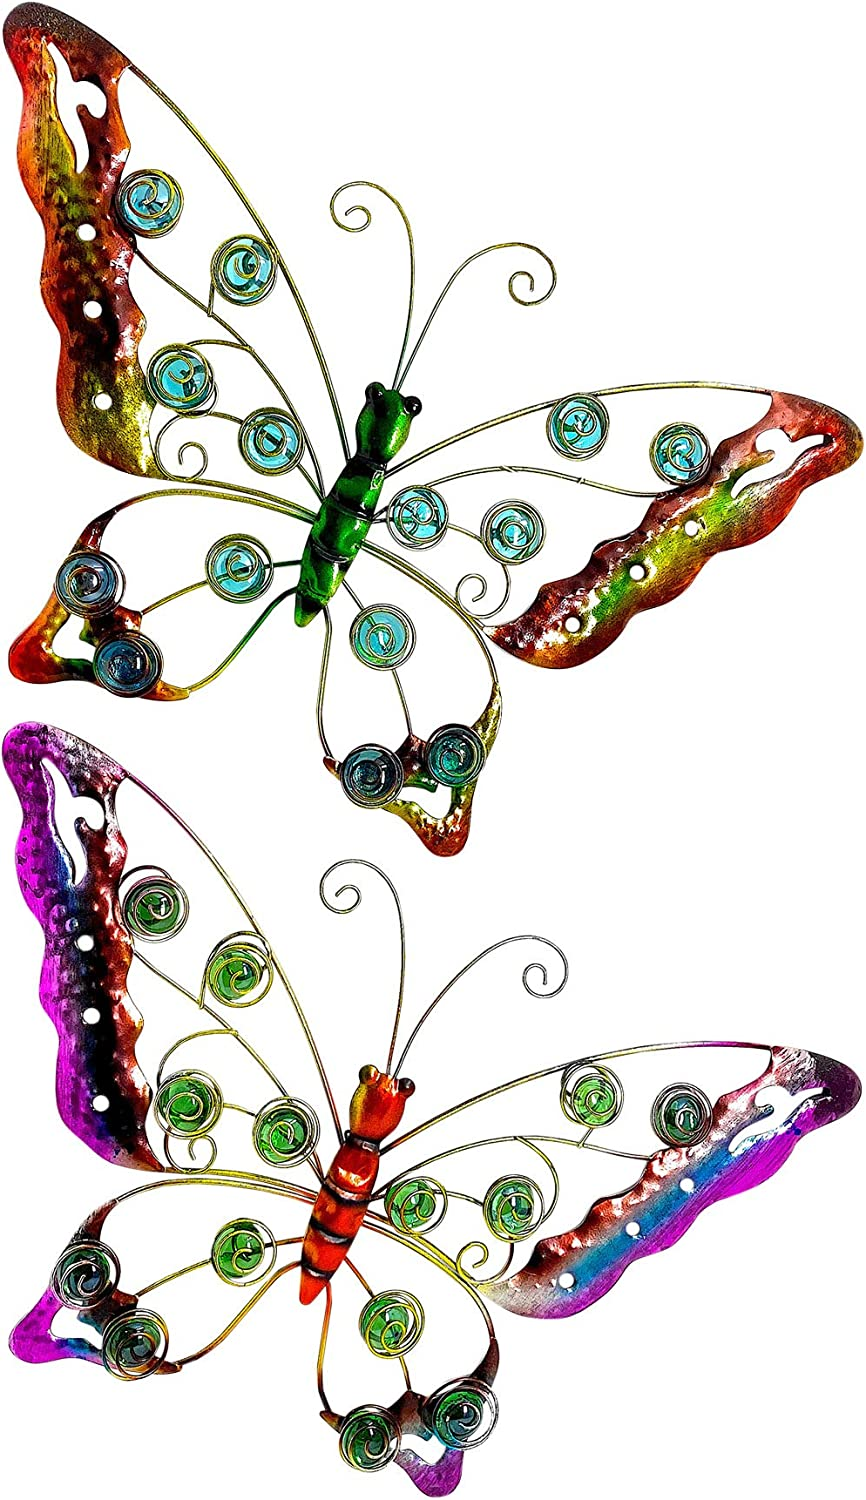 OSW Metal Butterfly Wall Art, Sculptured Outdoor Decor for Patio or Fence, Set of 2